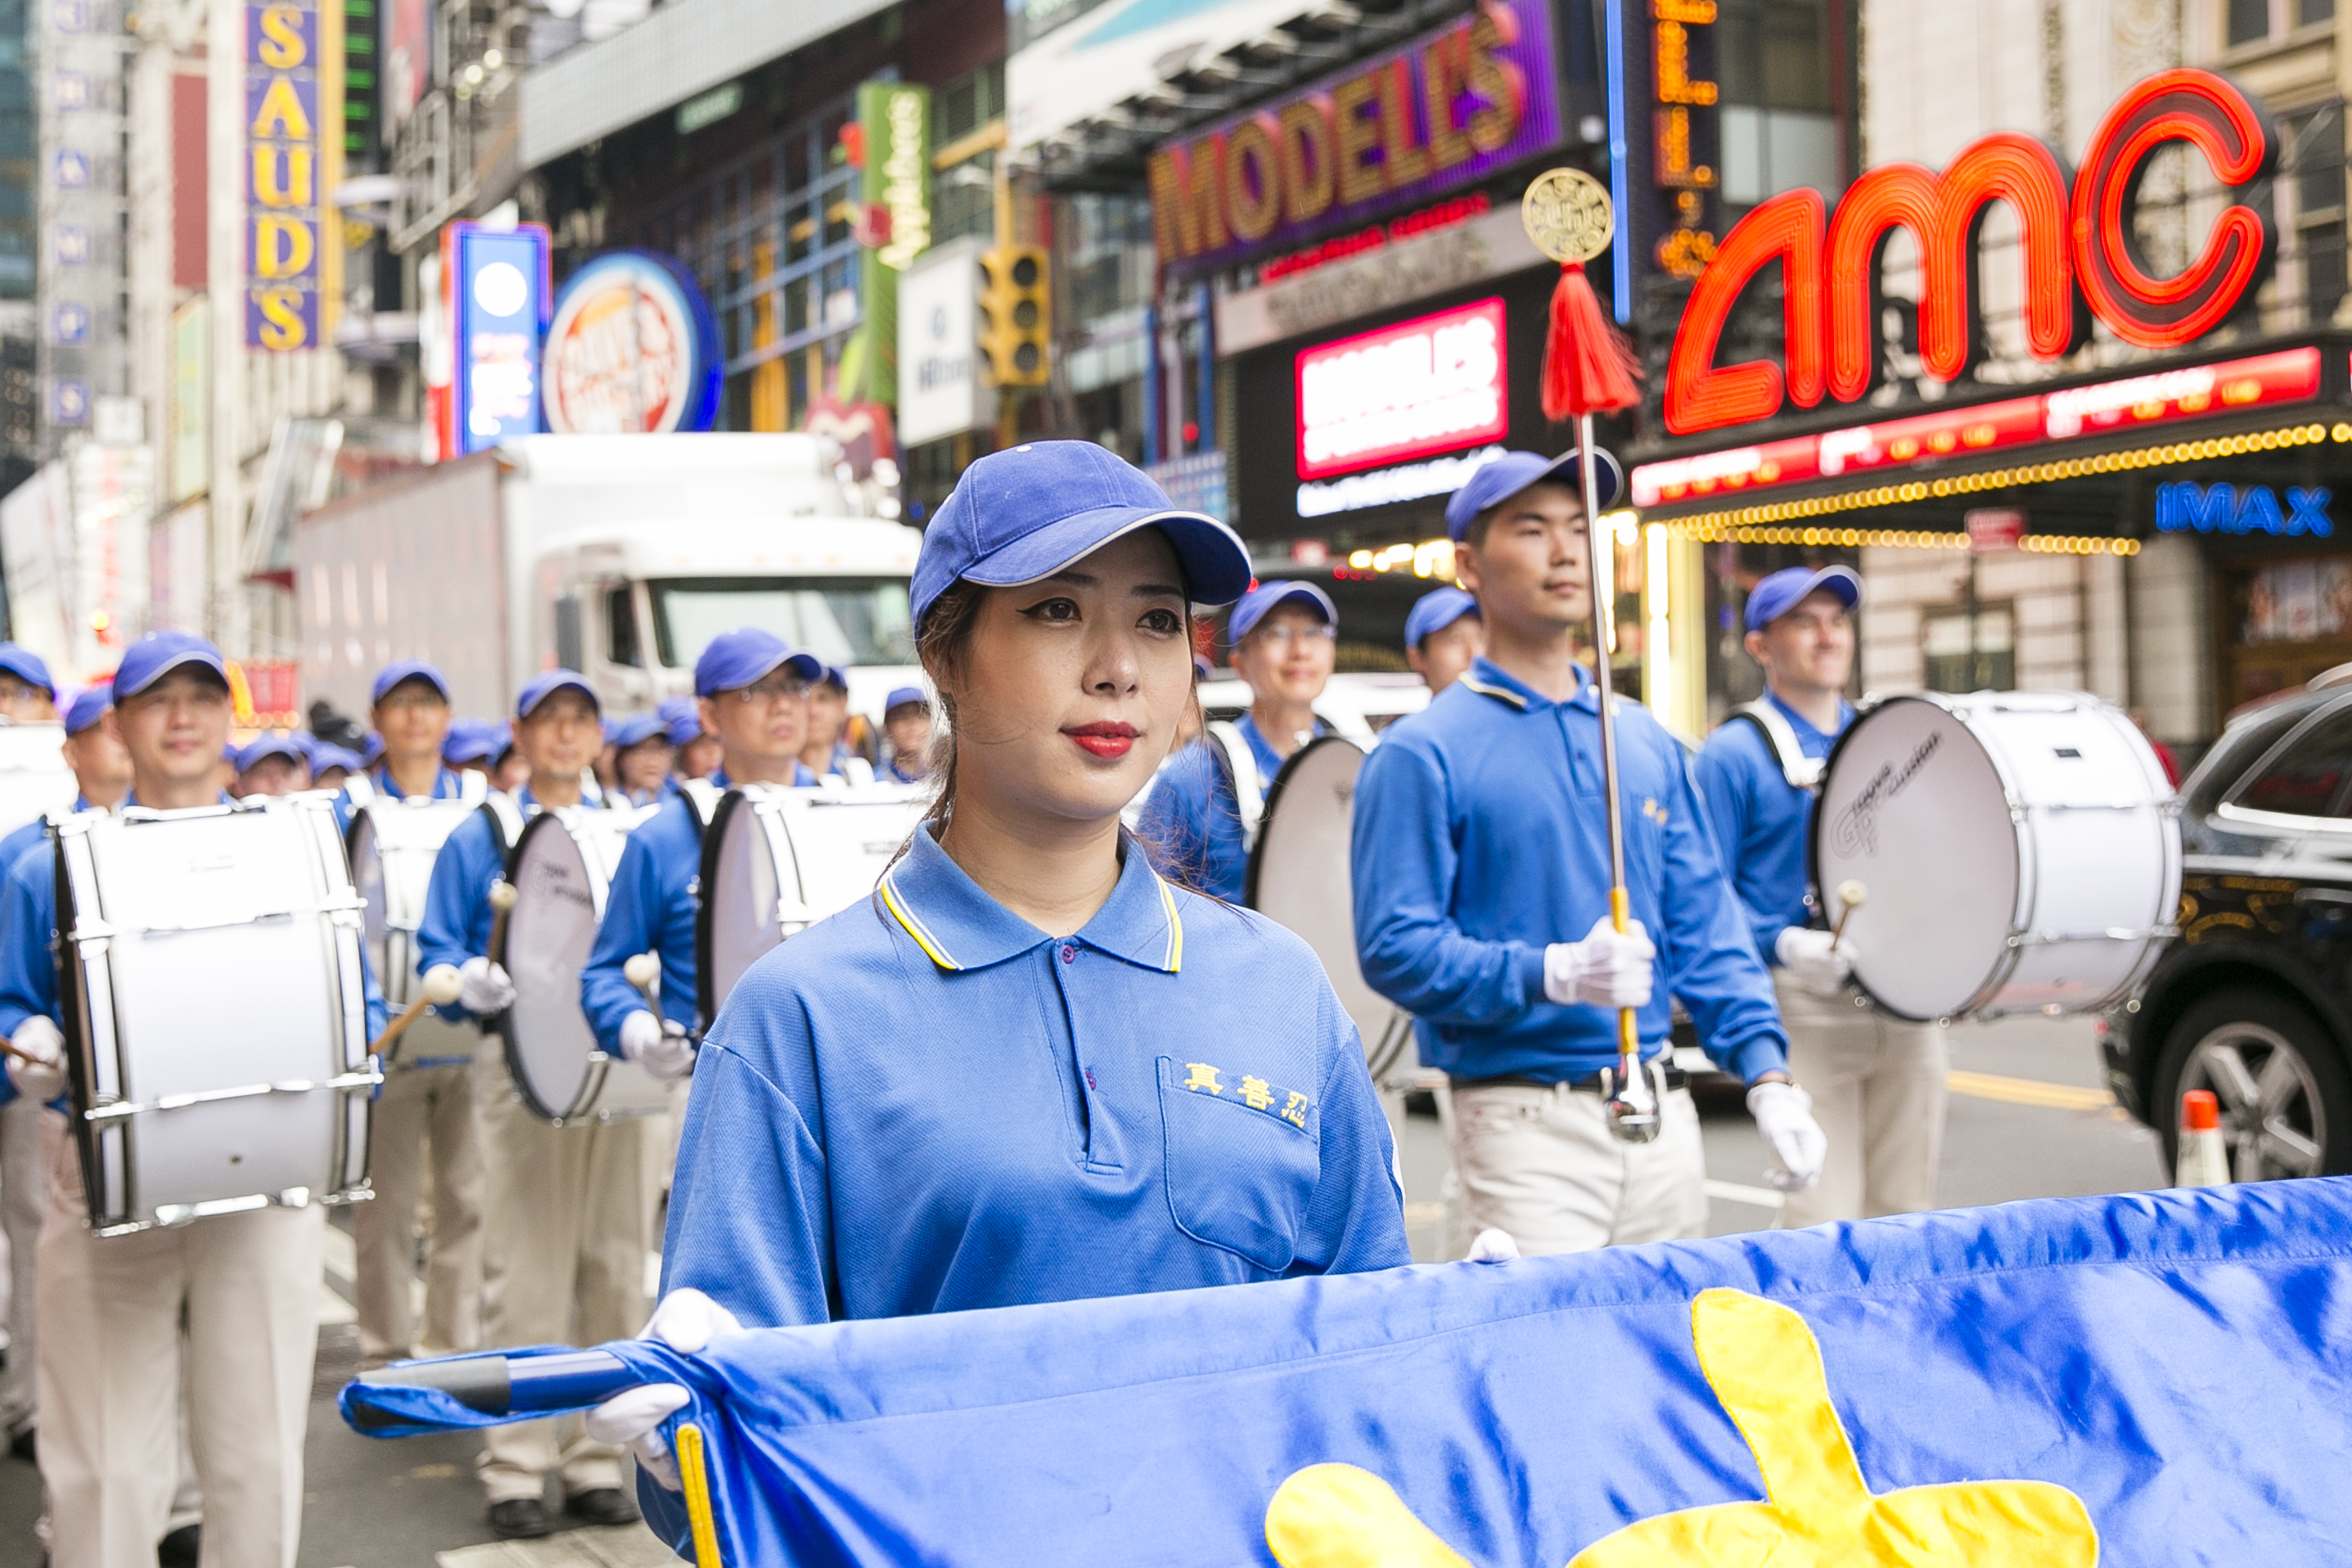 The Tian Guo Marching Band performs in the World Falun Dafa Day parade along 42nd Street in New York, on May 13, 2016. (Samira Bouaou/Epoch Times)